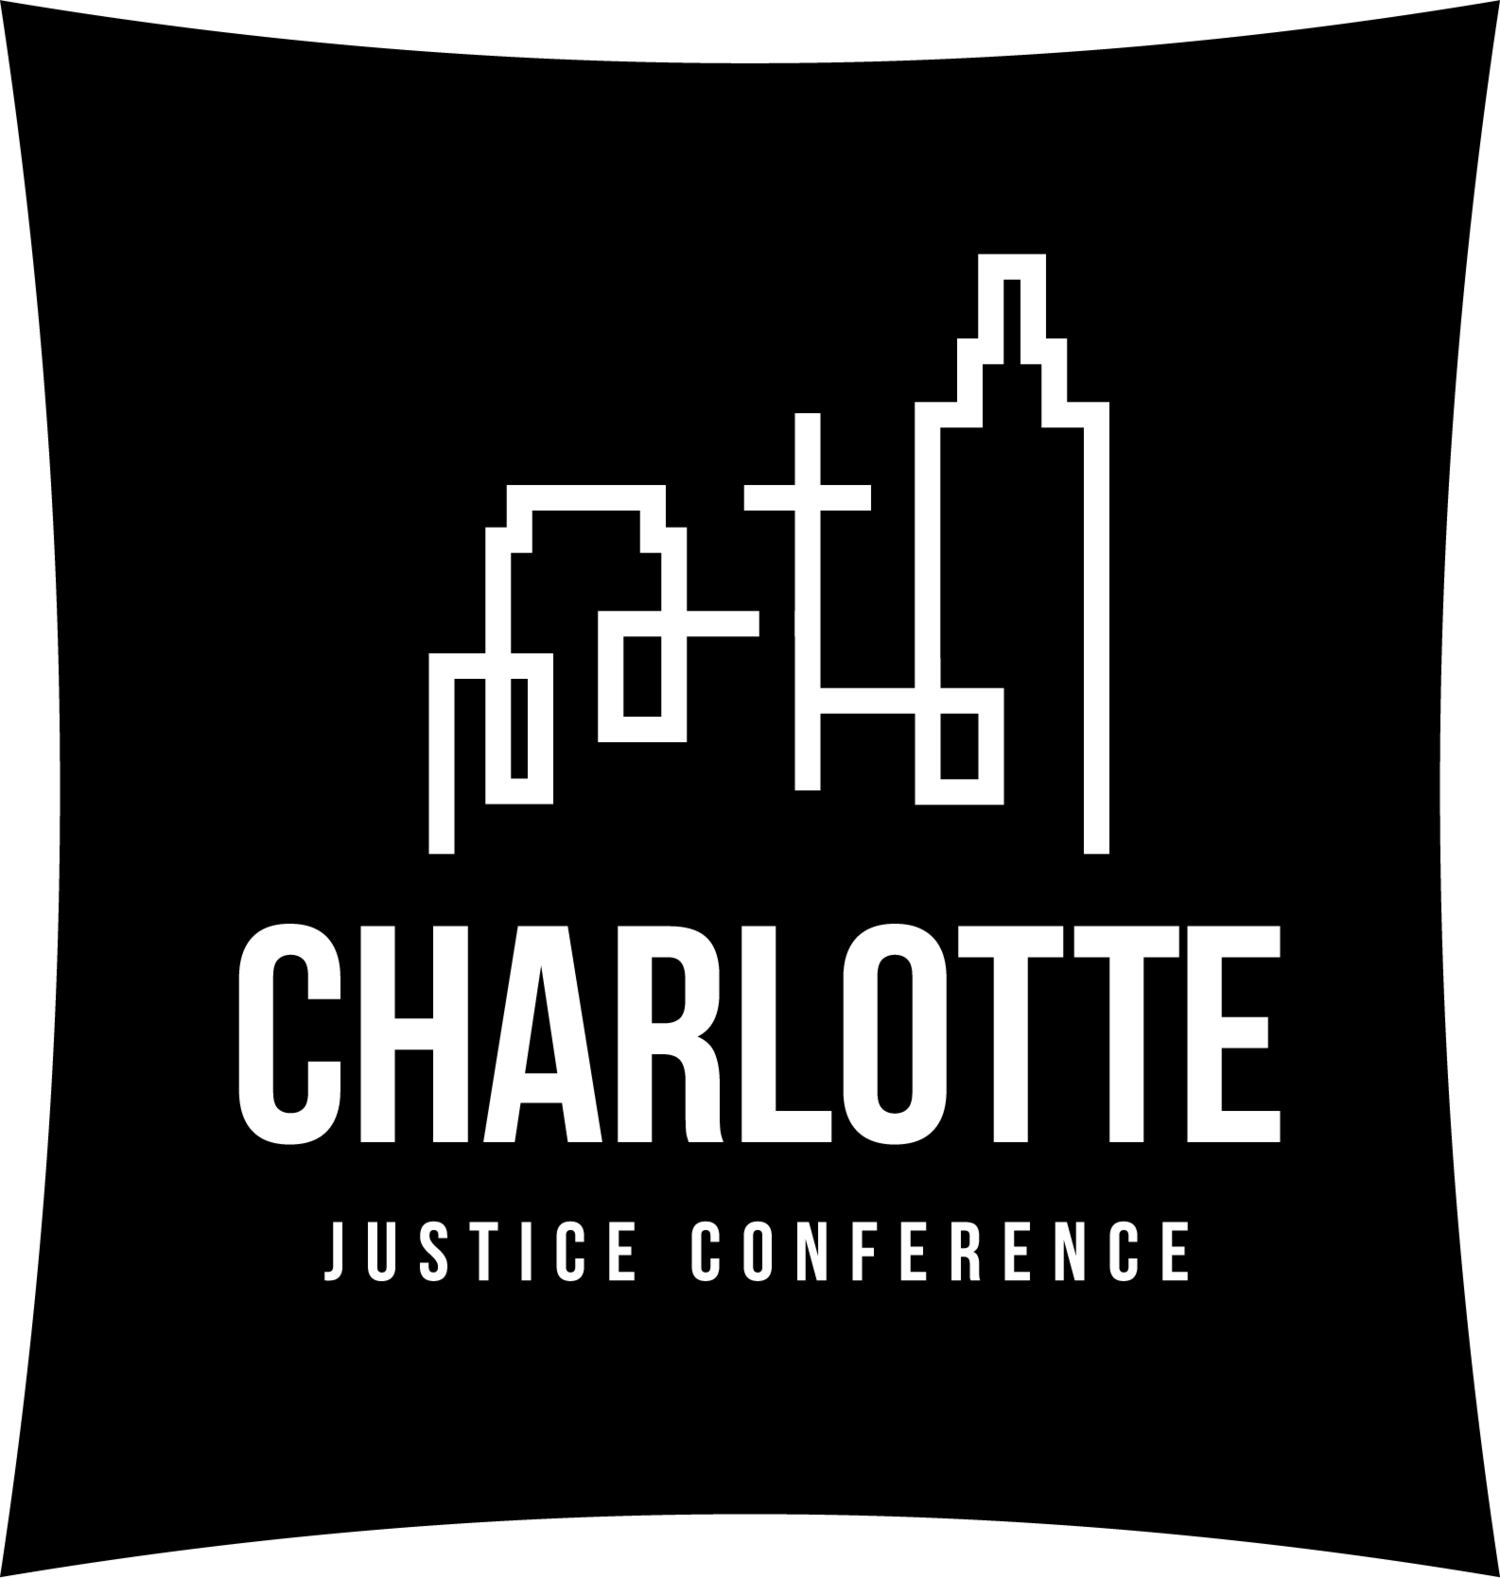 Charlotte Justice Conference